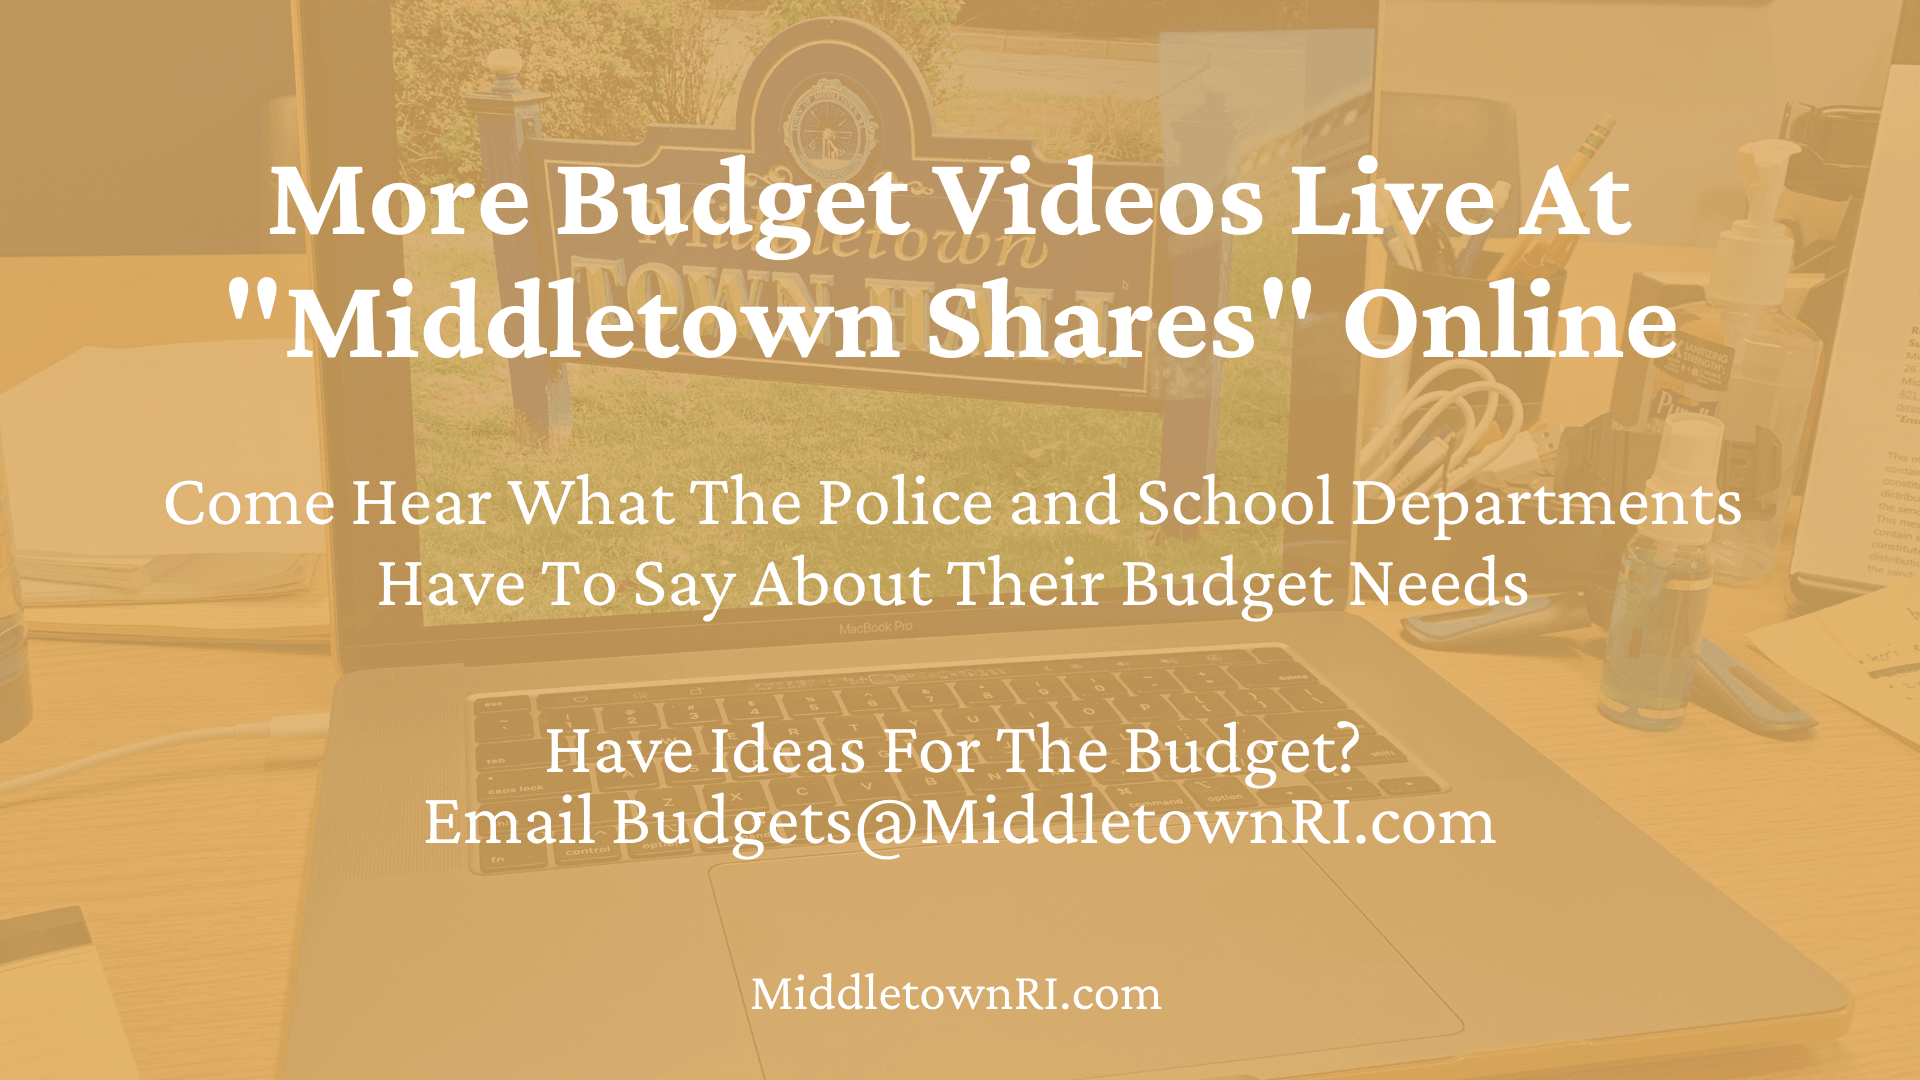 More Budget Videos Live At Middletown Shares Online-2